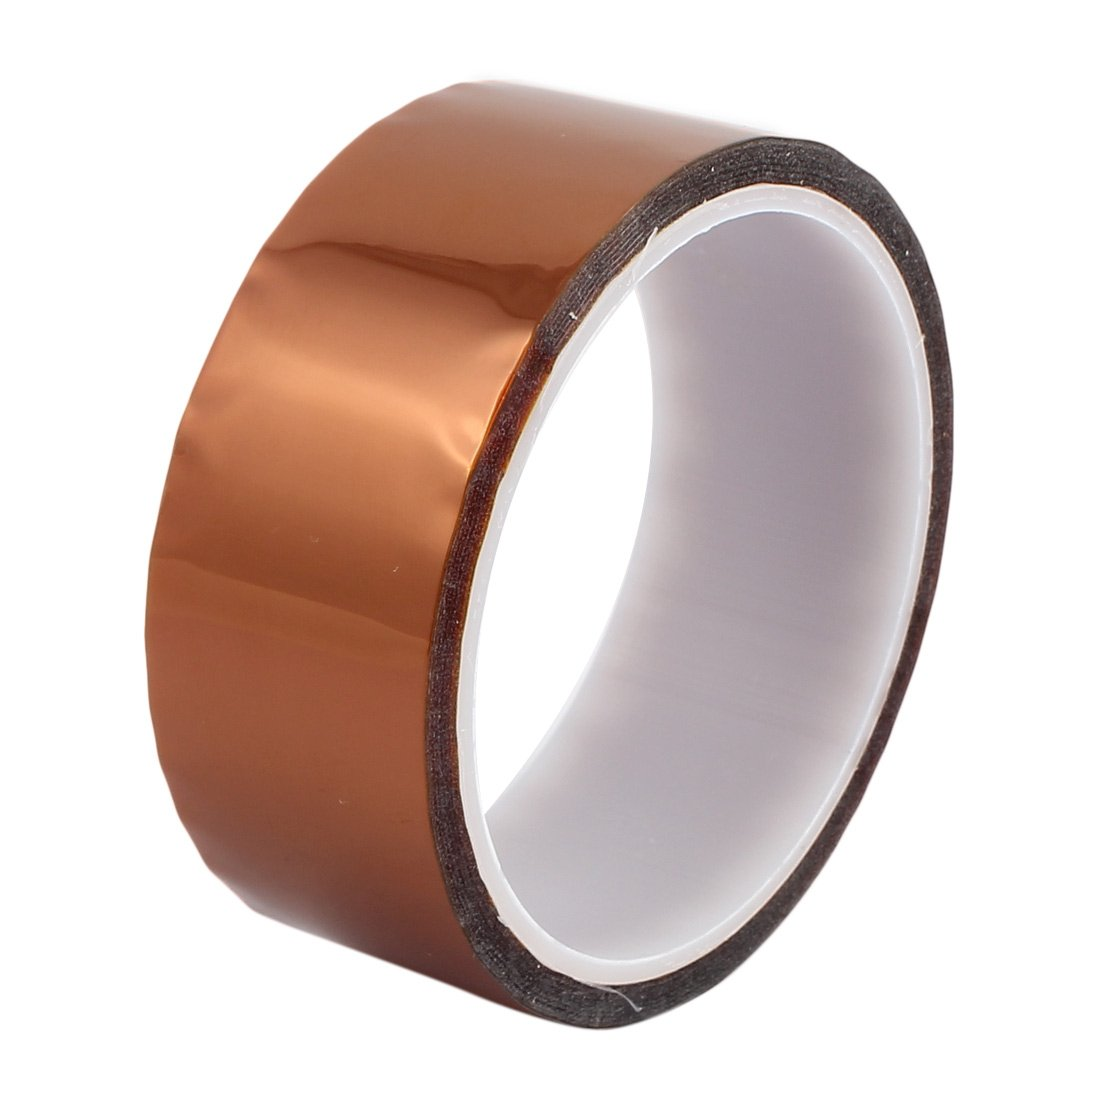 uxcell 35mm Width 30M Length High Temp Heat Resistant Polyimide Tape Brown